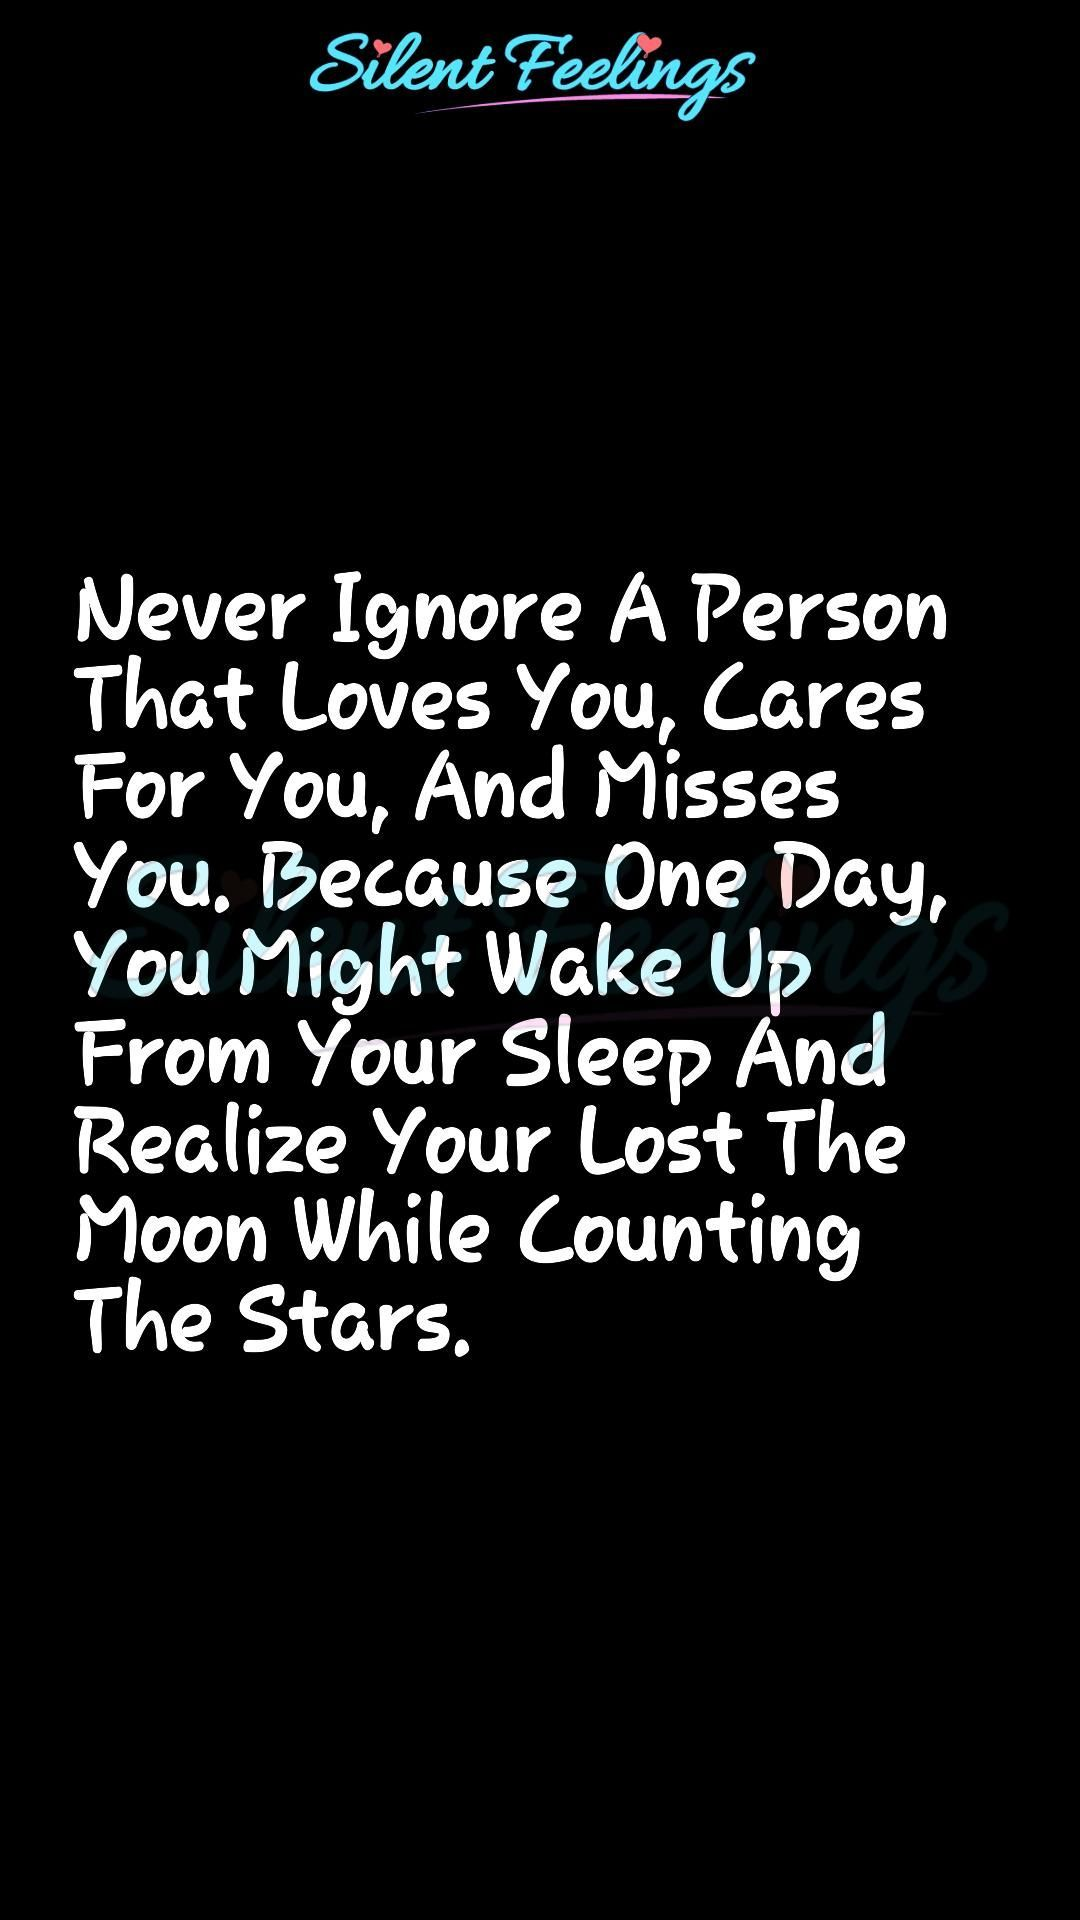 Never Ignore A Person  That Loves You - Kita Projekte